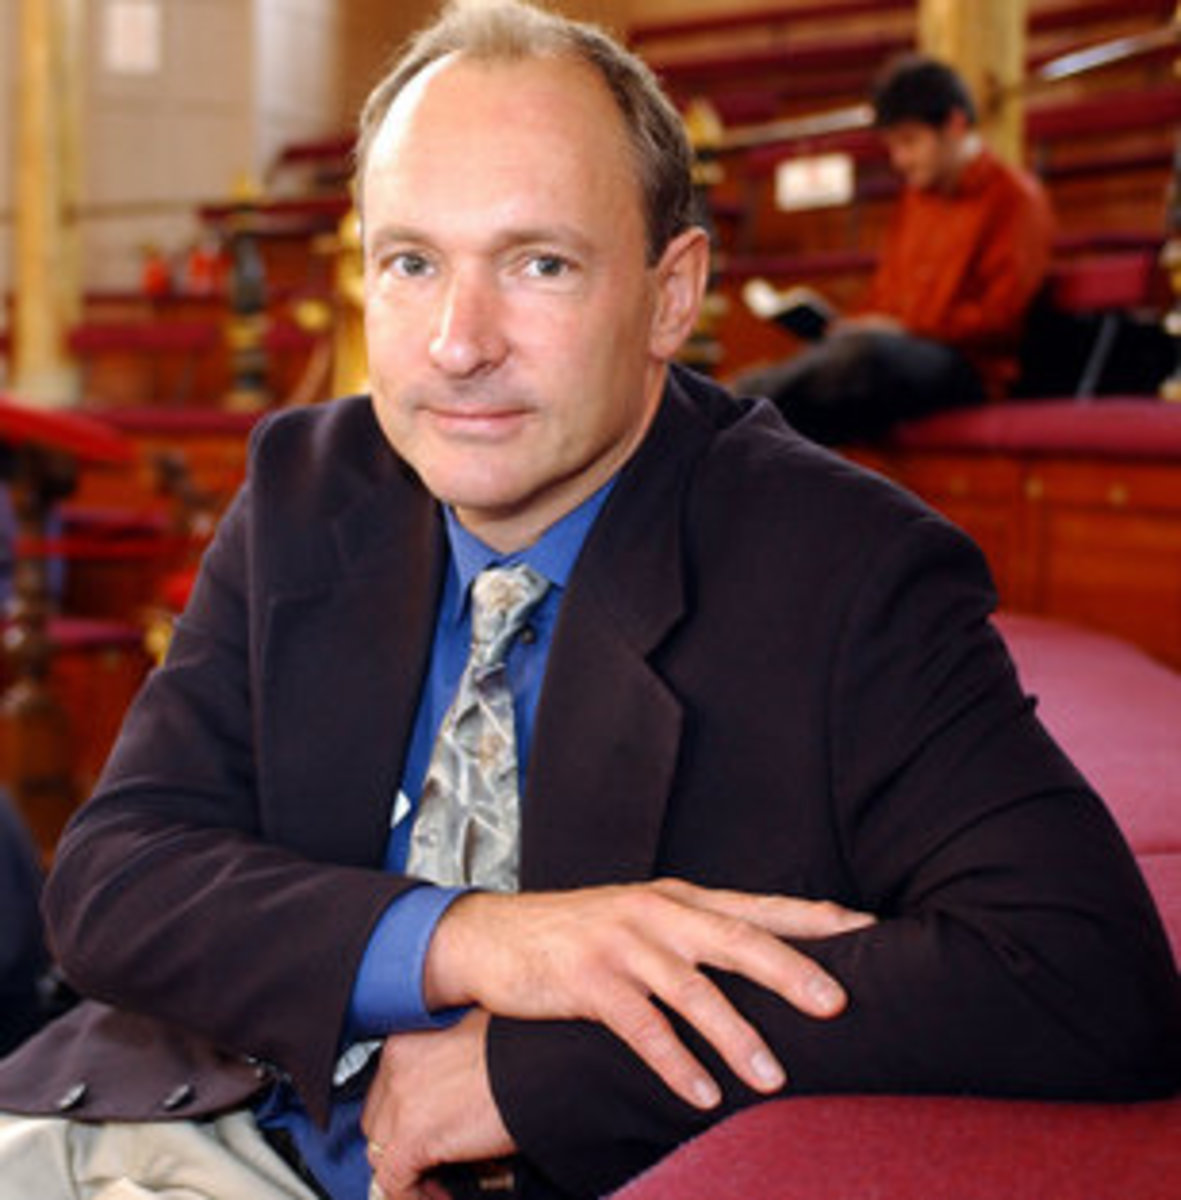 Tim Berners-Lee, Inventor of the Internet